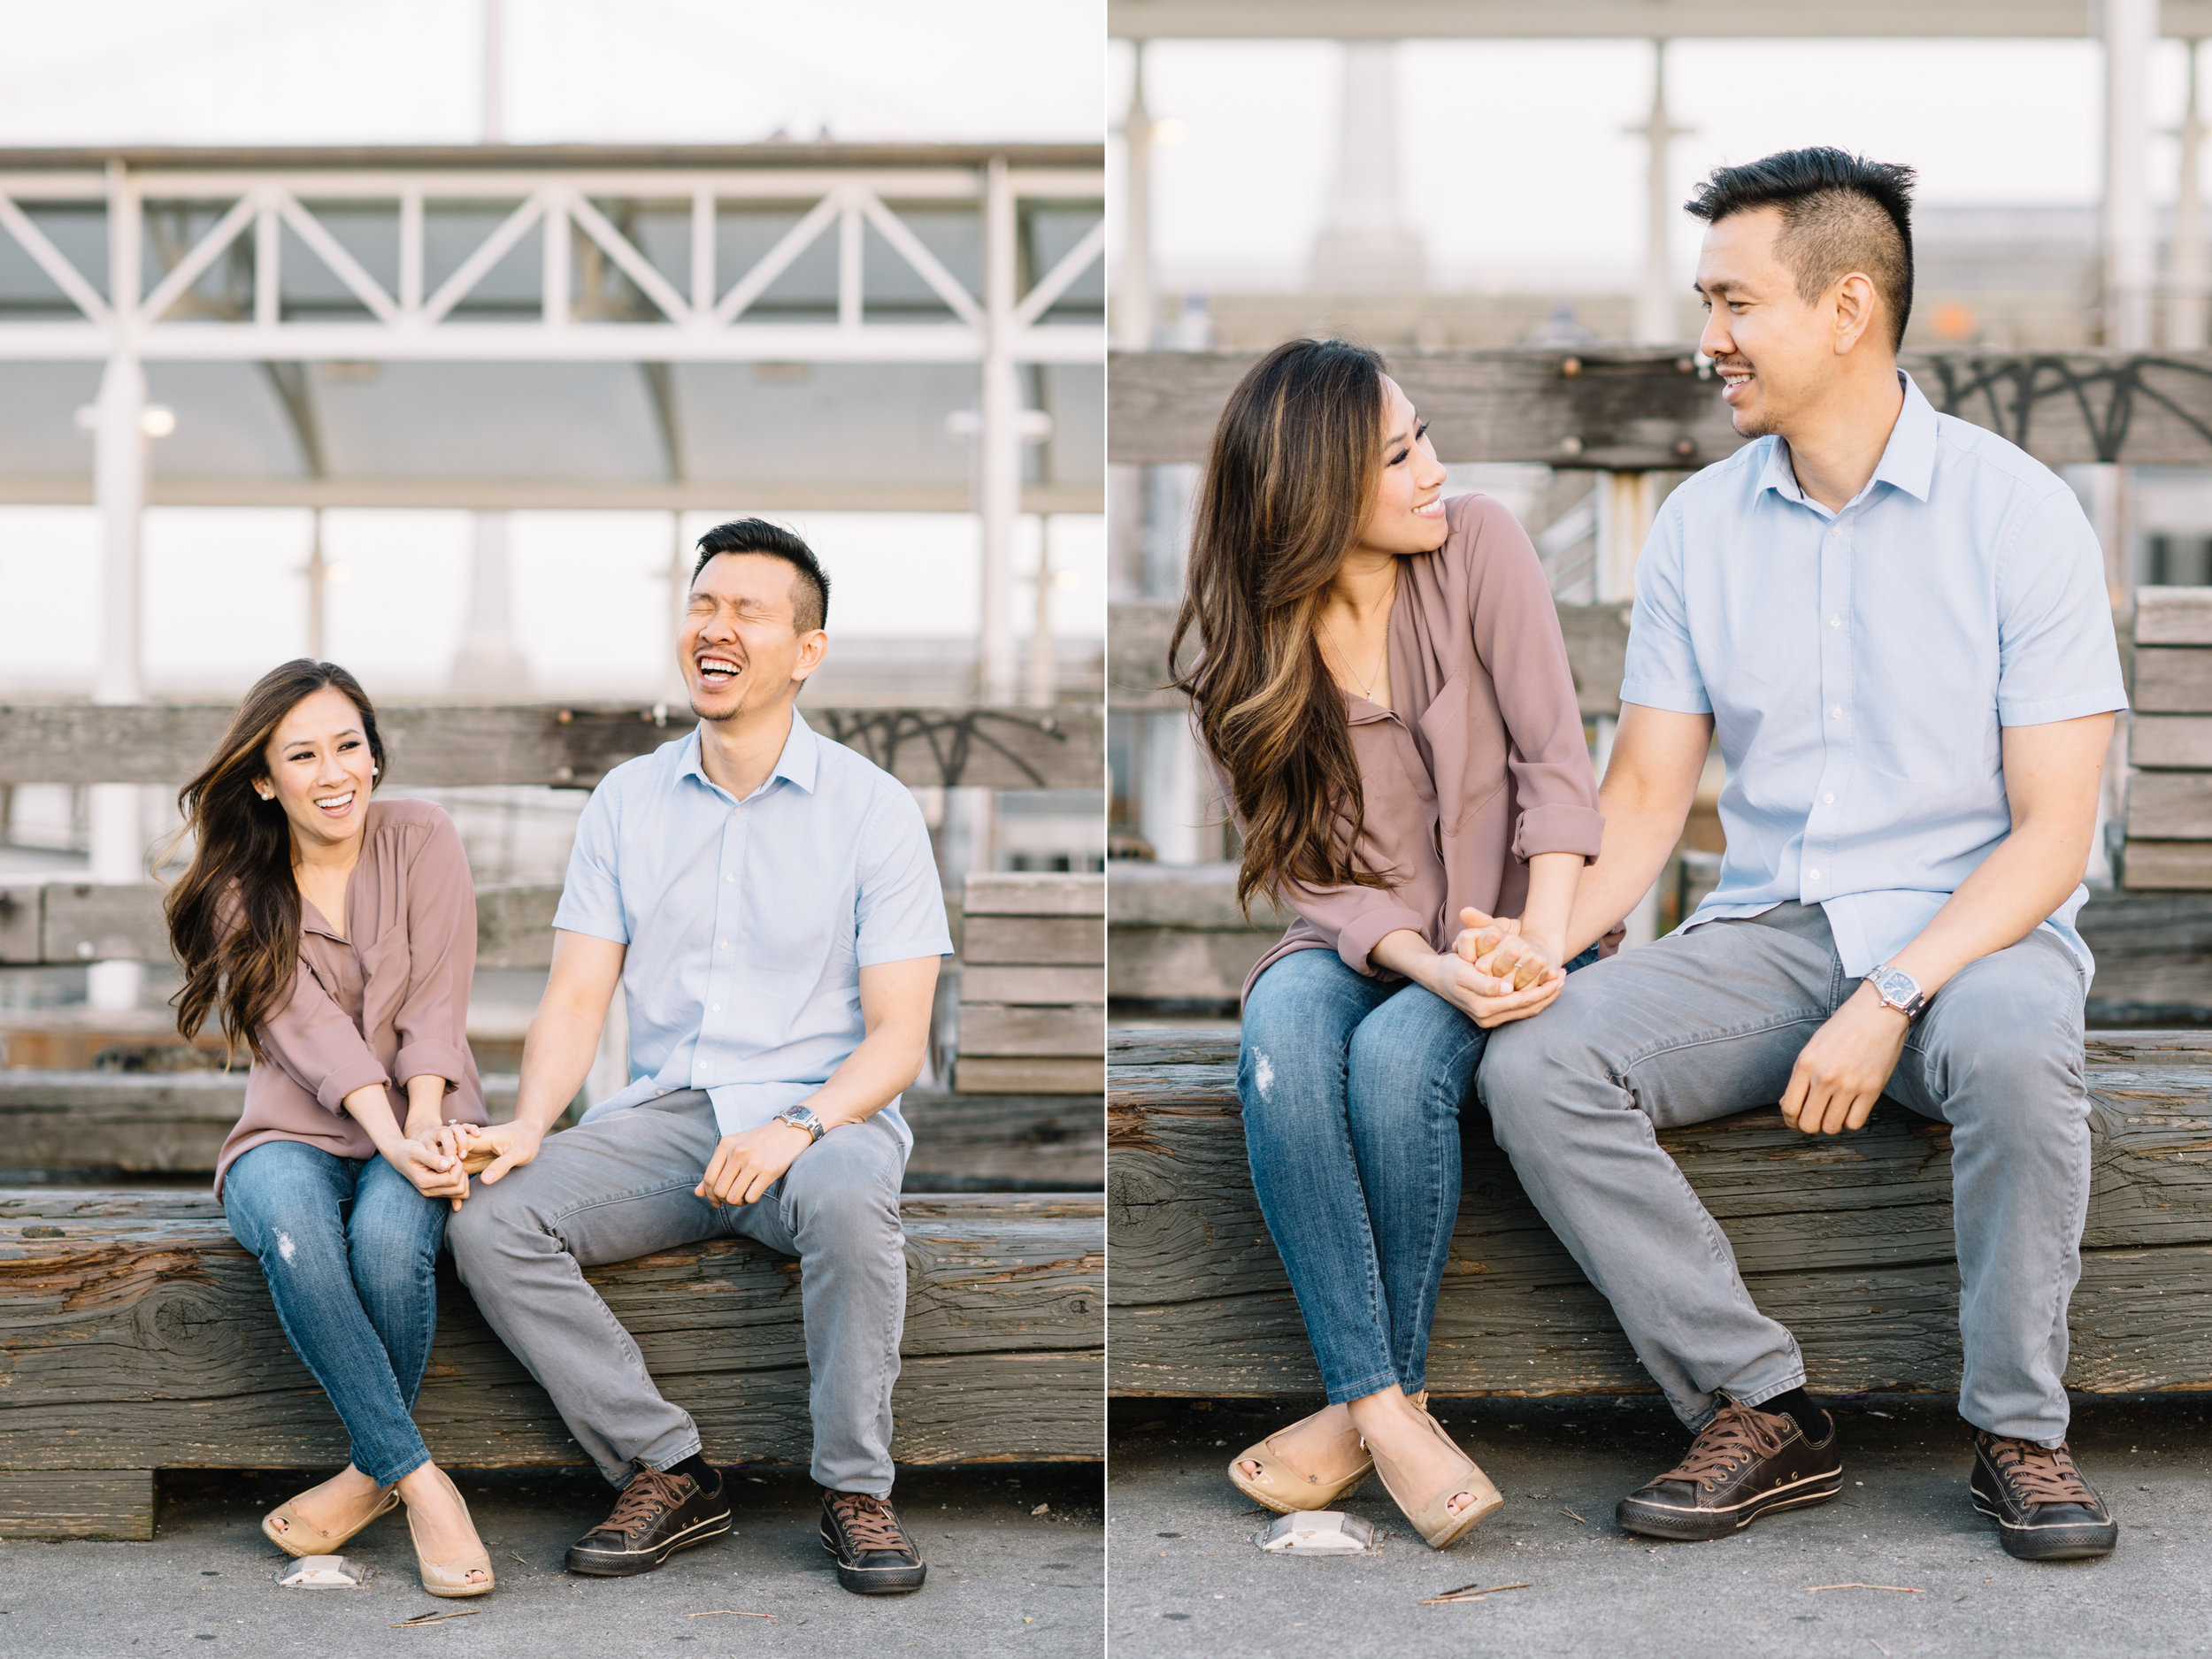 jennifer-jayn-photography-san-francisco-engagement-session-10.jpg